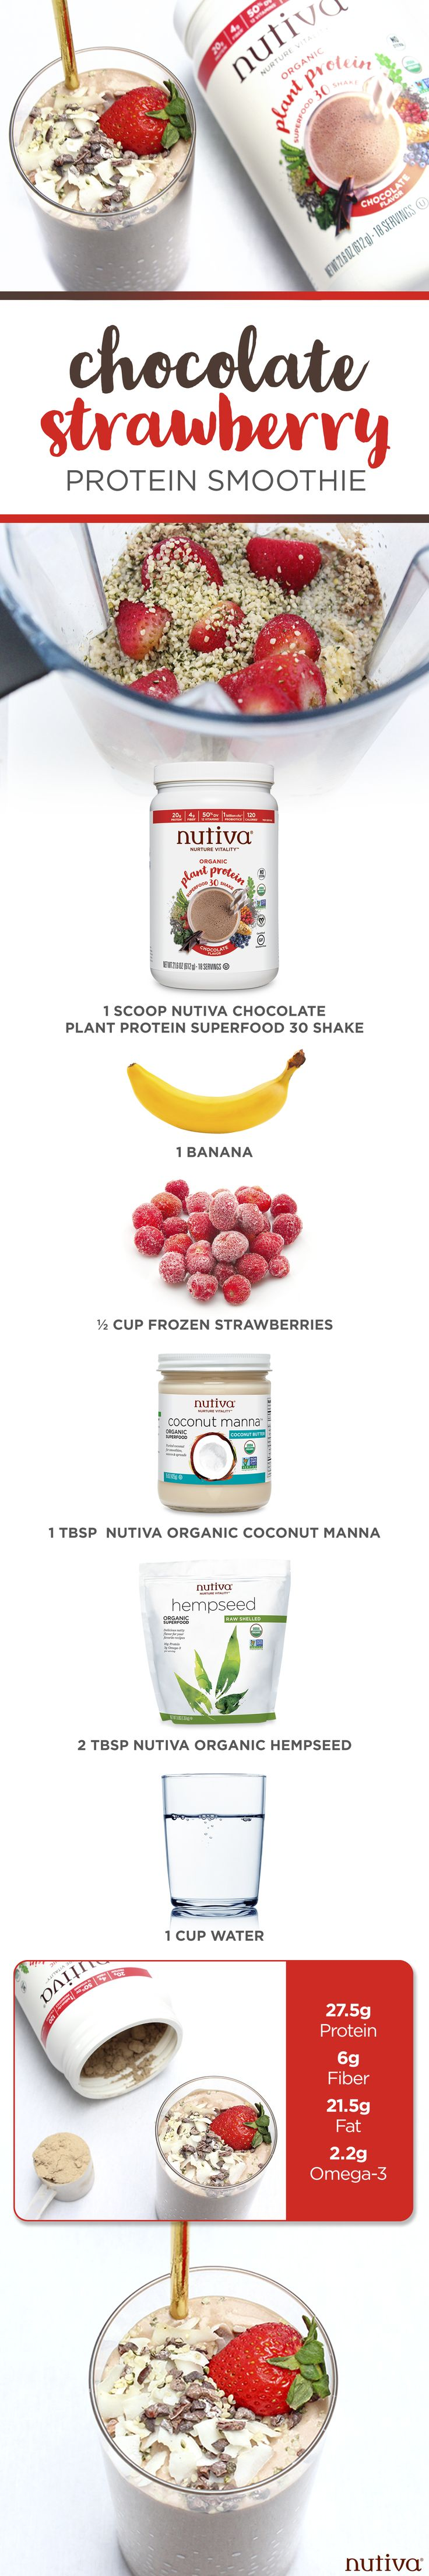 Chocolate Strawberry Protein Smoothie kitchen.nutiva.com